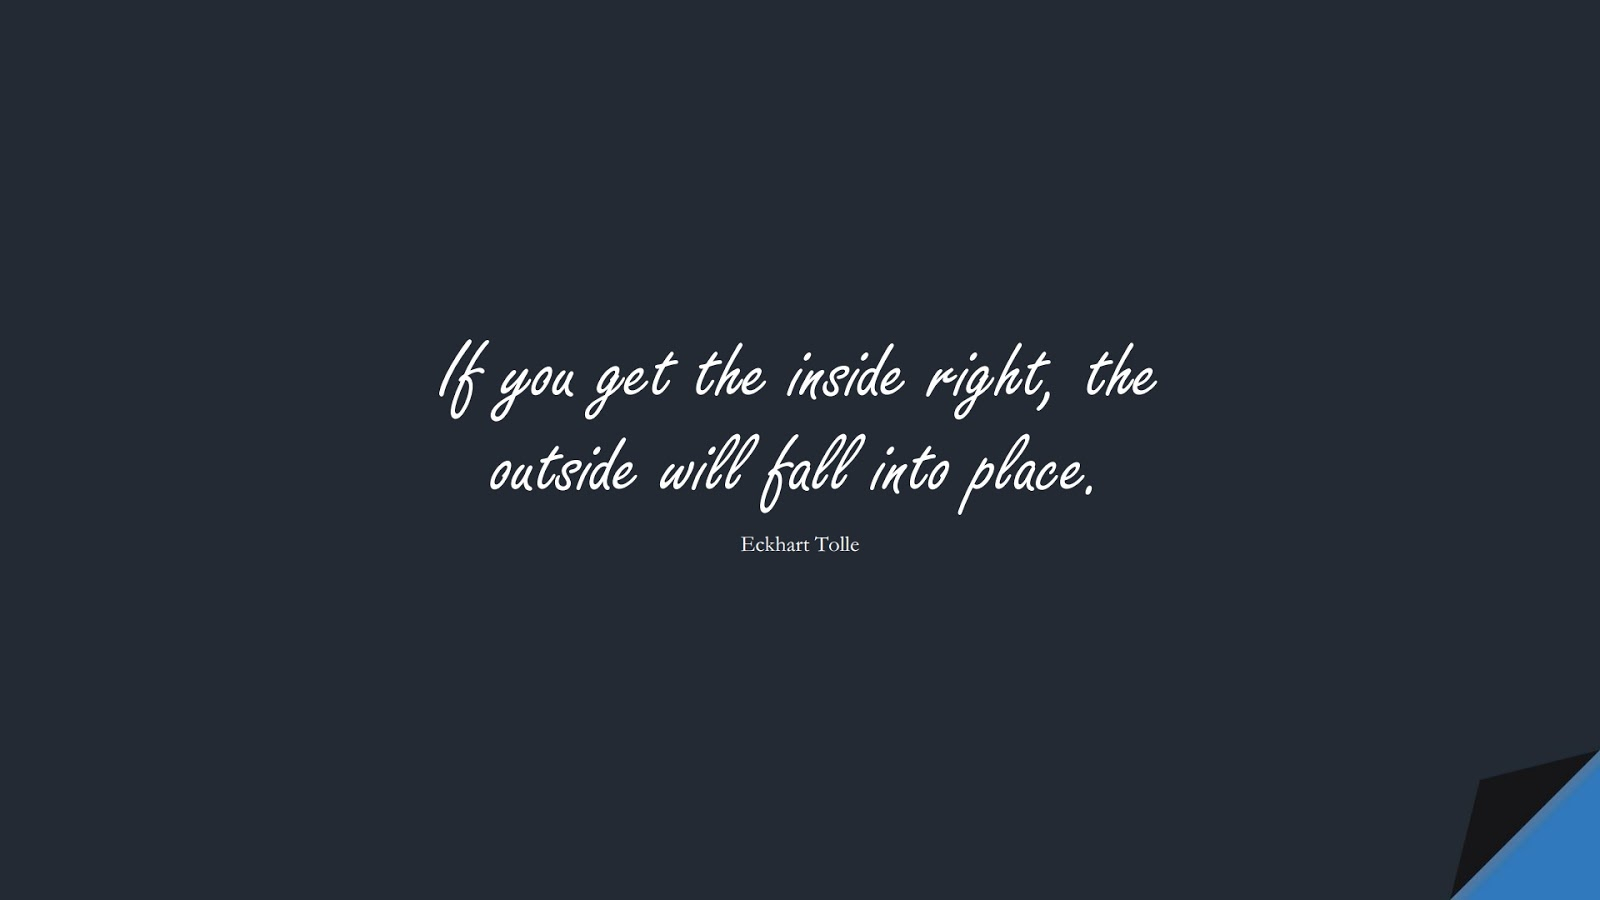 If you get the inside right, the outside will fall into place. (Eckhart Tolle);  #CalmQuotes